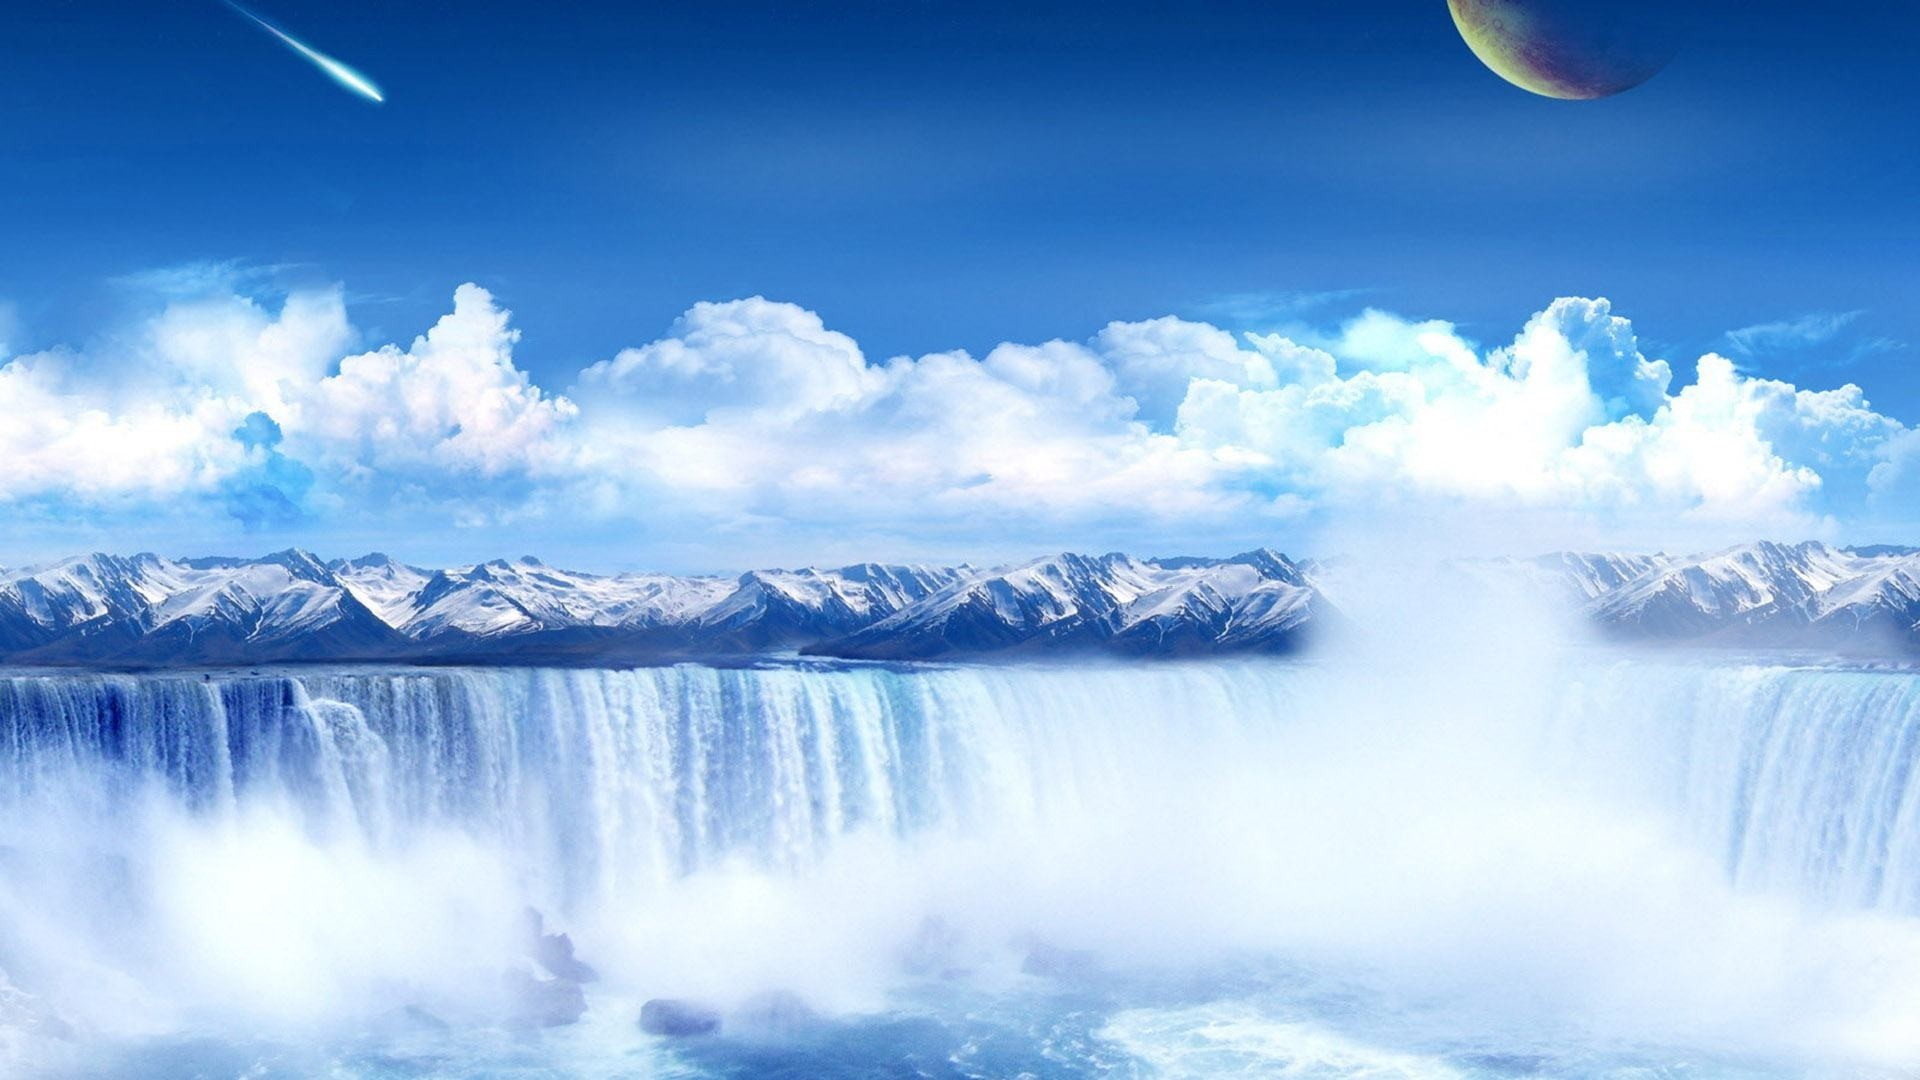 1920x1080  Wallpapers Backgrounds - wallpapers part fantasy space waterfall  desktop background screensaver